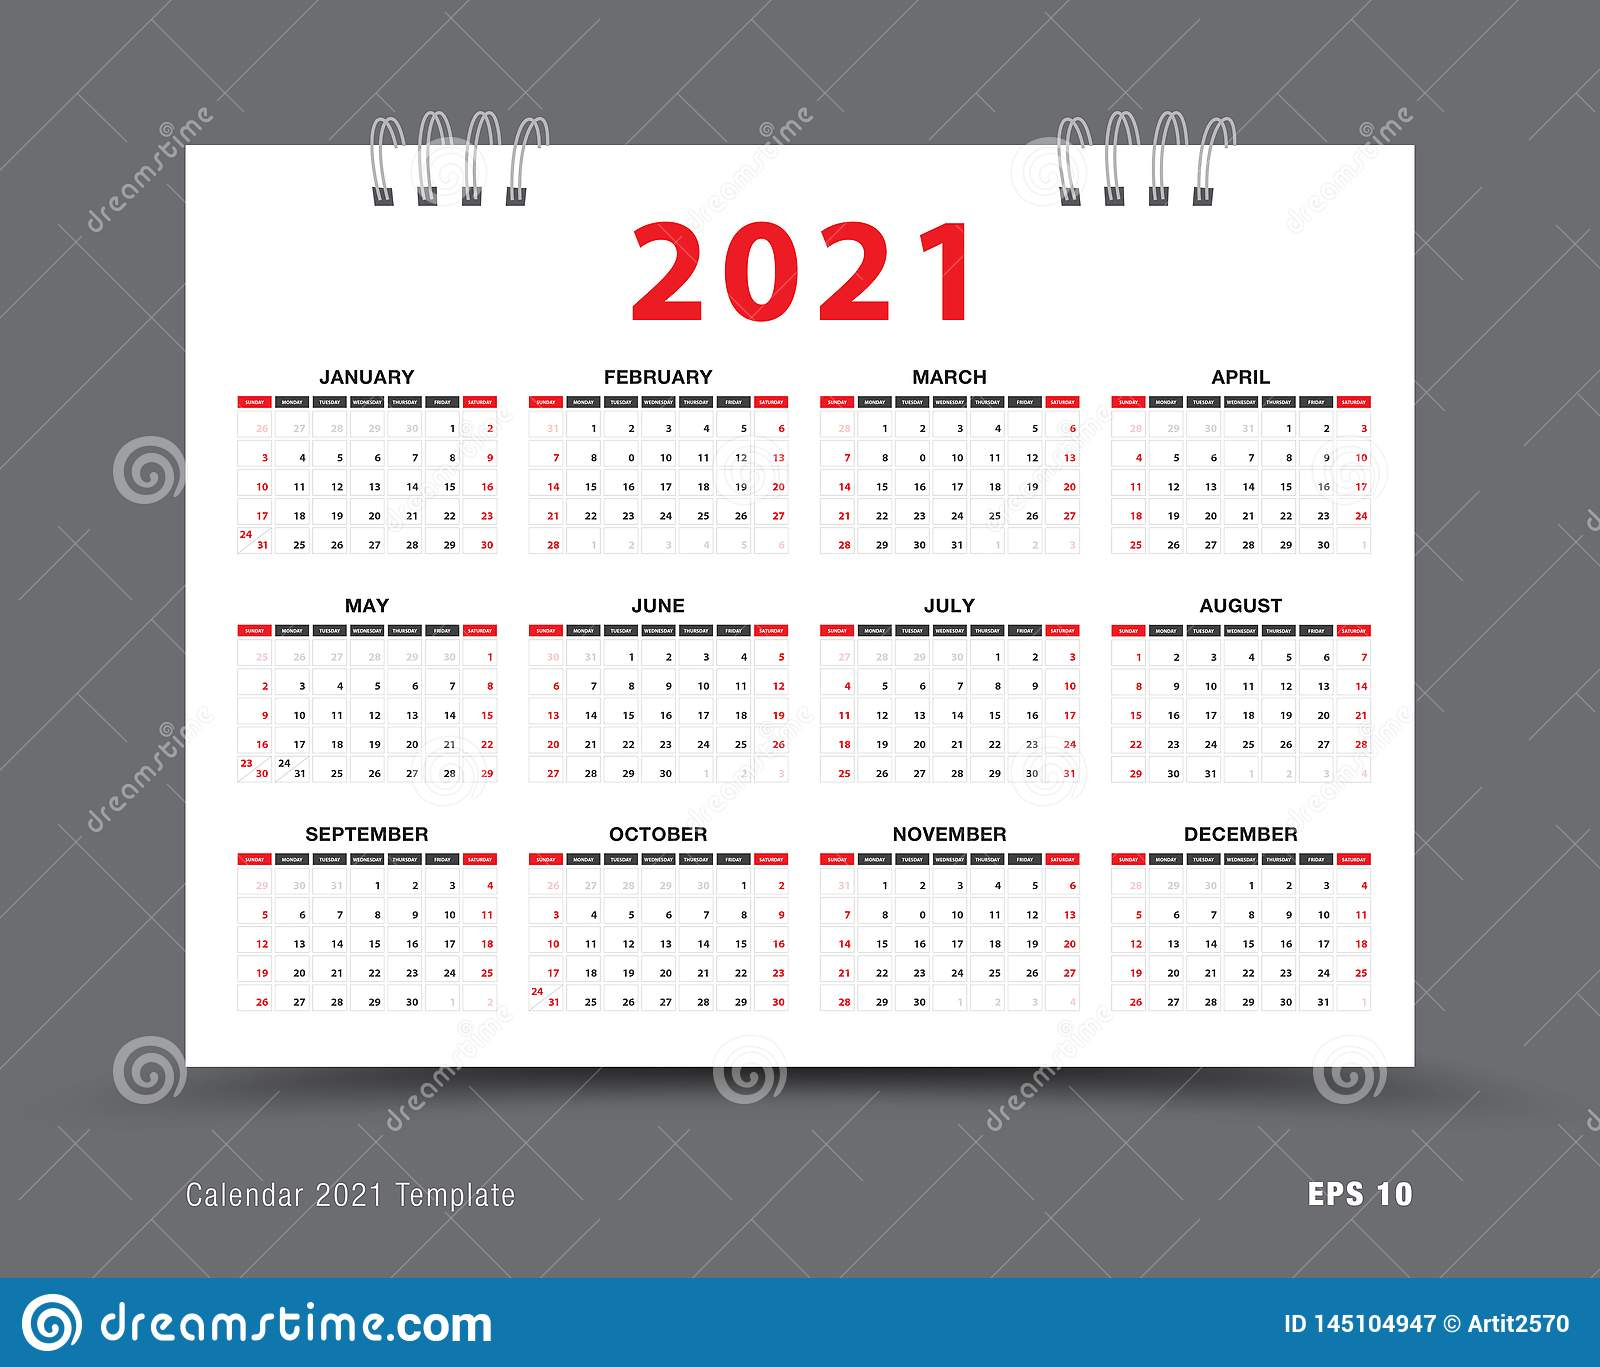 Calendar 2021 Template Layout, 12 Months Yearly Calendar Set in Printable Yearly Full Moon Calendar For 2021